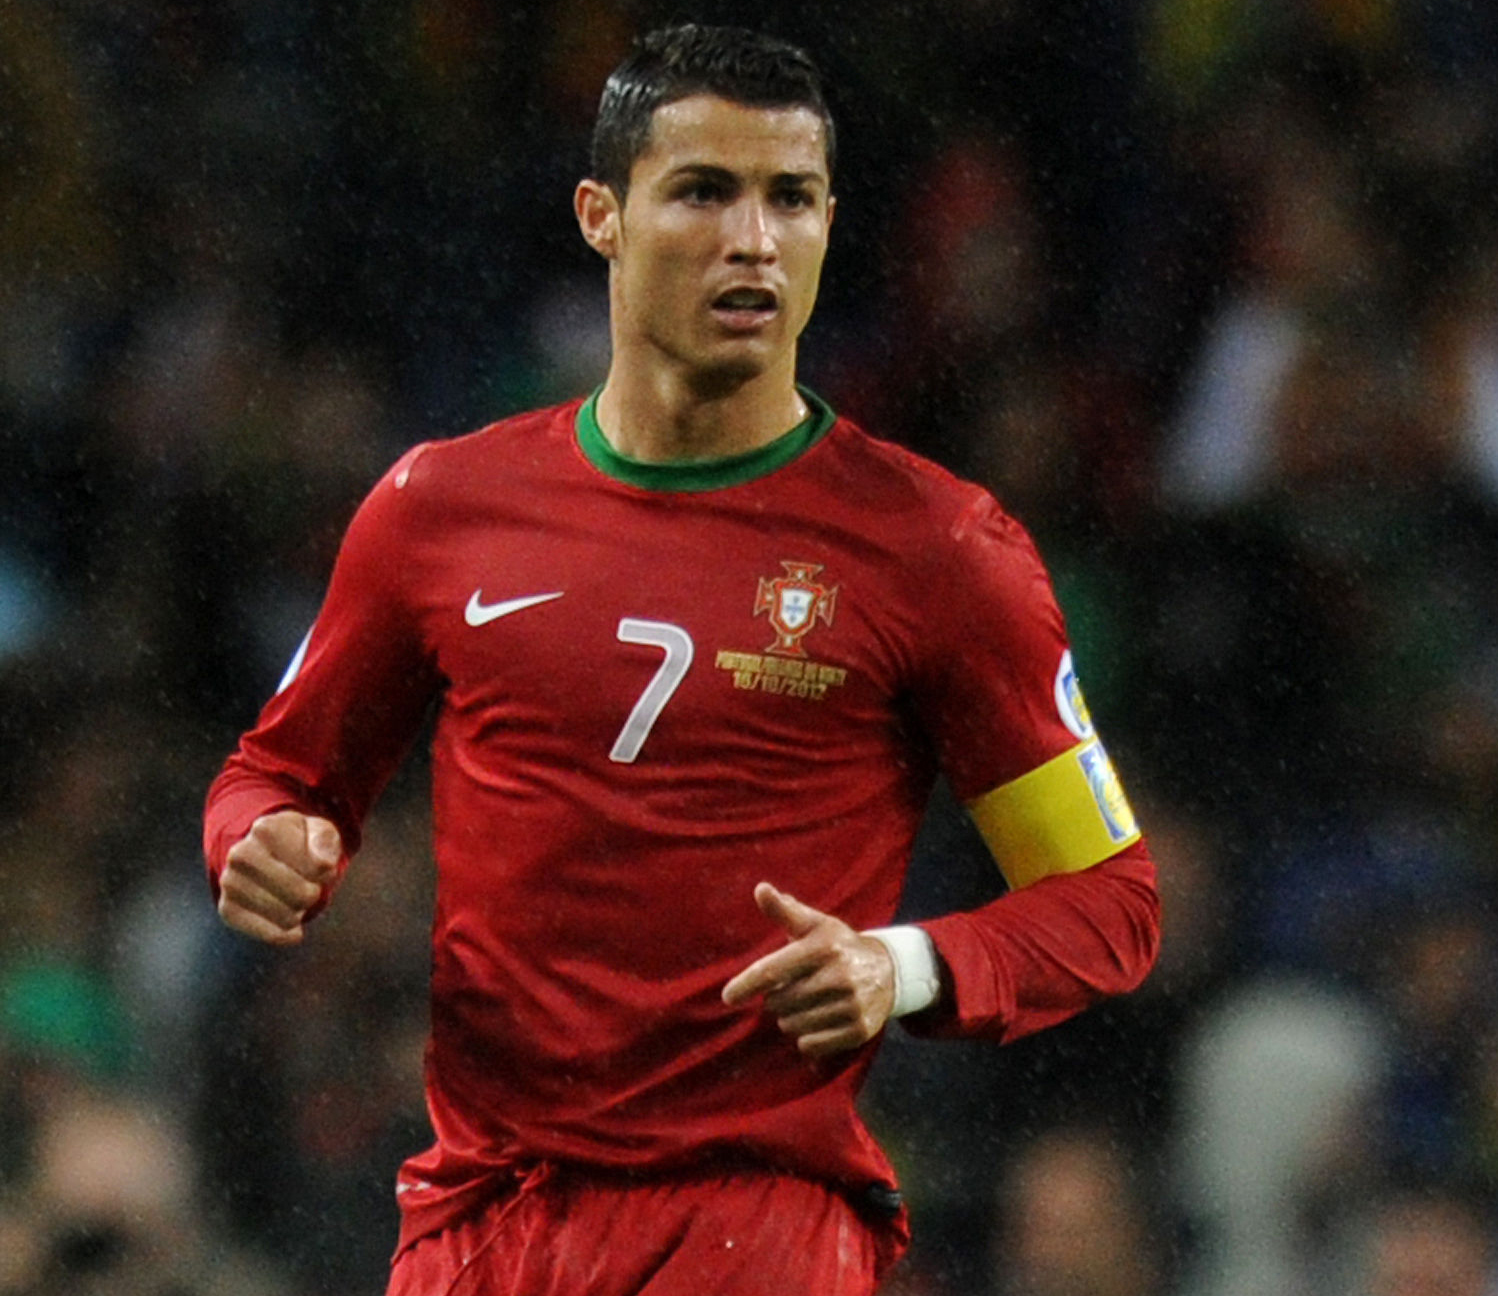 Ronaldo became a cult hero at United after enjoying six successful years under Sir Alex Ferguson.